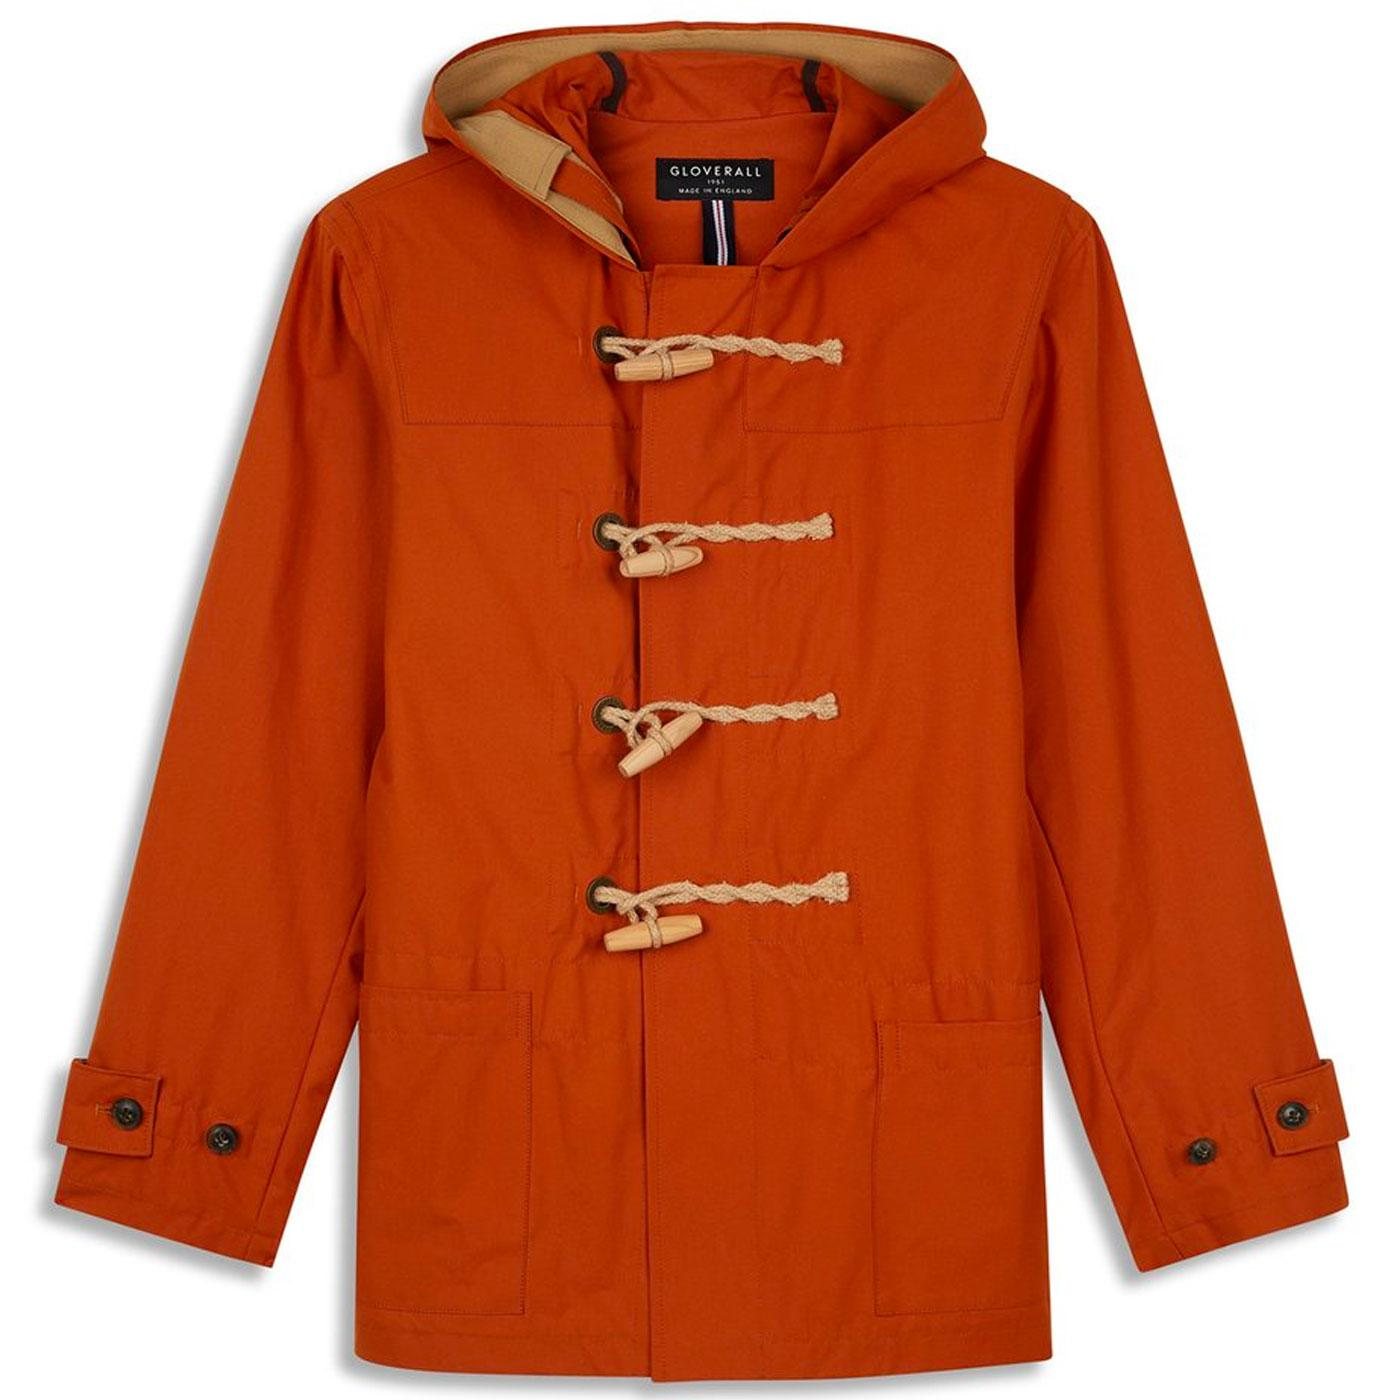 Mid Monty GLOVERALL Mod Summer Duffle Coat GINGER